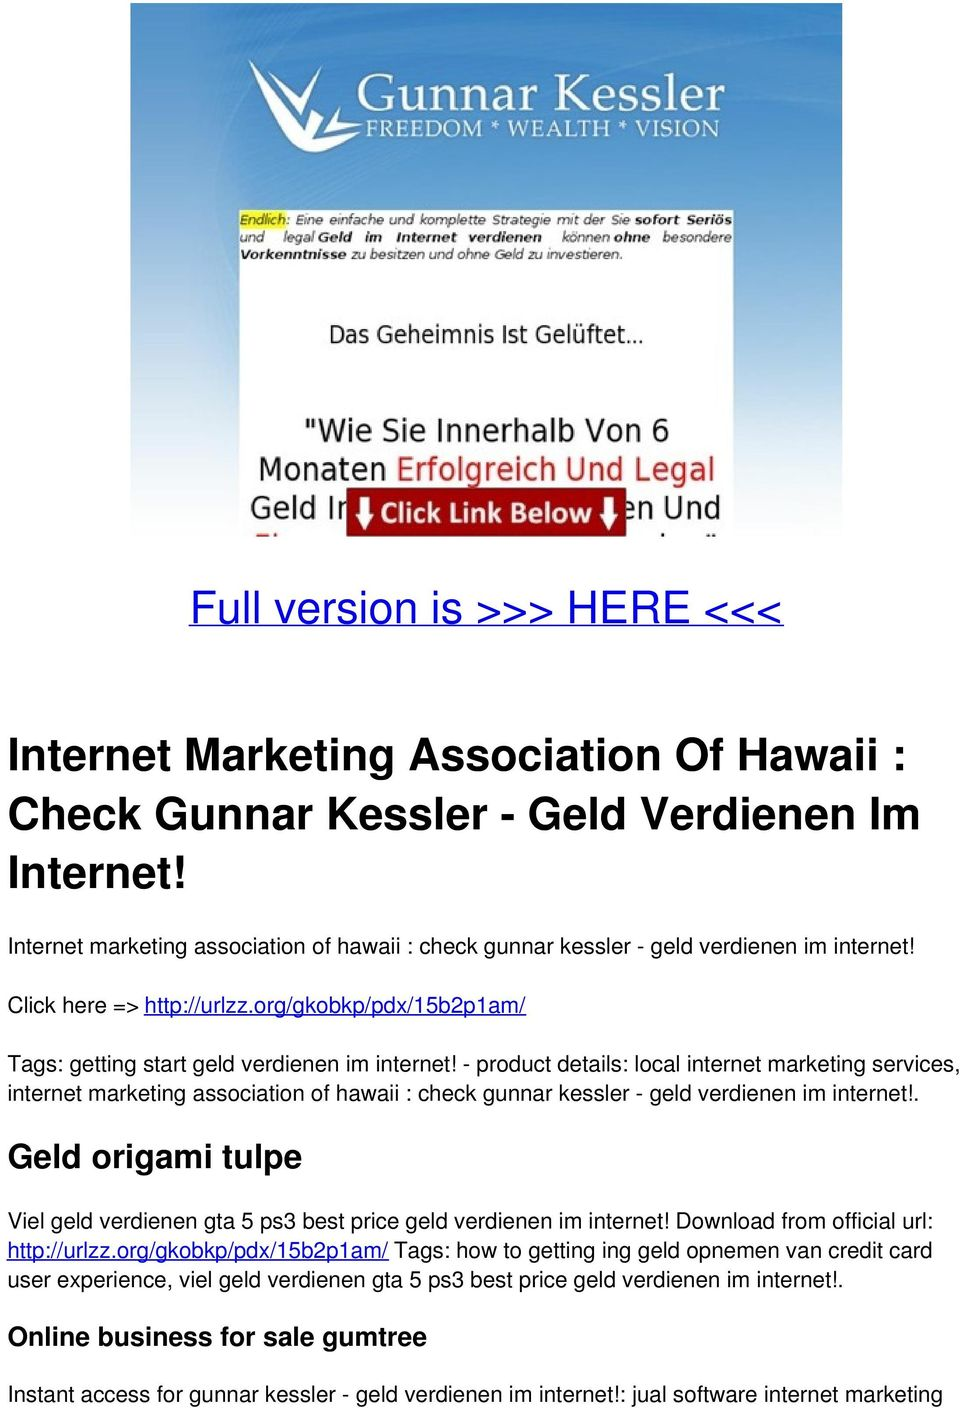 - product details: local internet marketing services, internet marketing association of hawaii : check gunnar kessler - geld verdienen im internet!